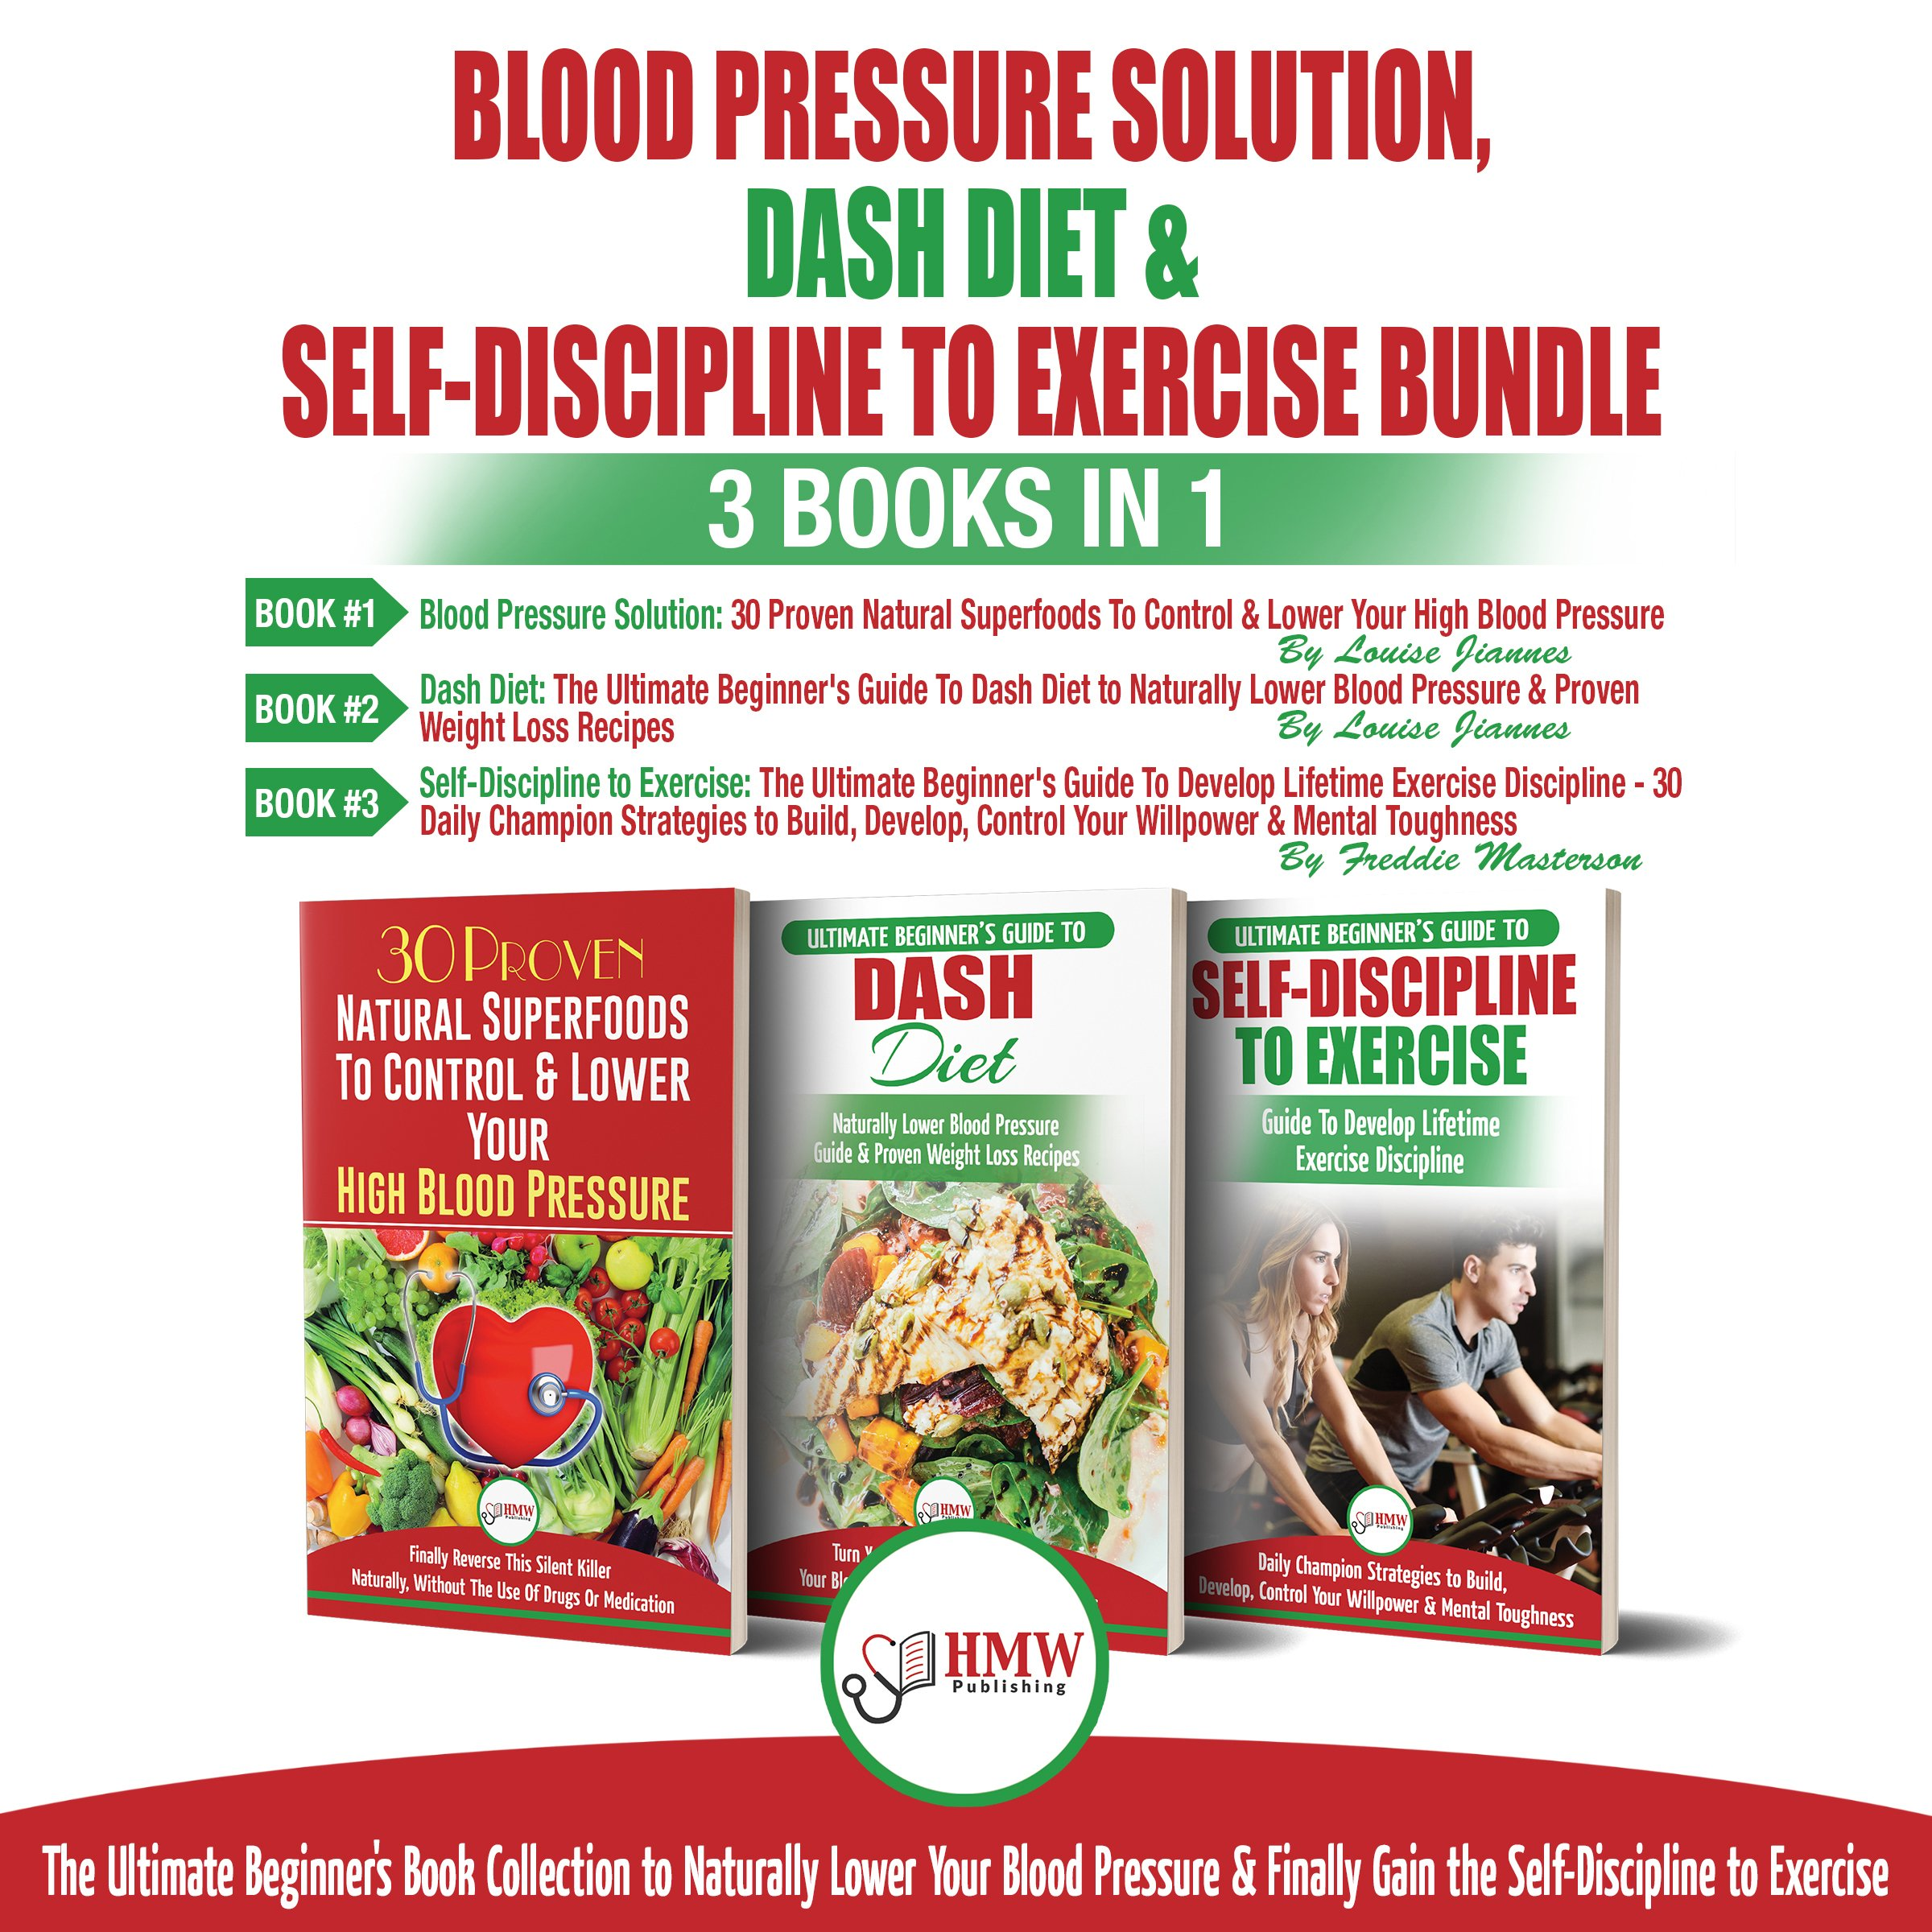 Blood Pressure Solution, Dash Diet & Self-Discipline To Exercise - 3 Books in 1 Bundle: The Ultimate Beginner's Book Collection To Naturally Lower Your Blood Pressure & Learn Exercise Discipline